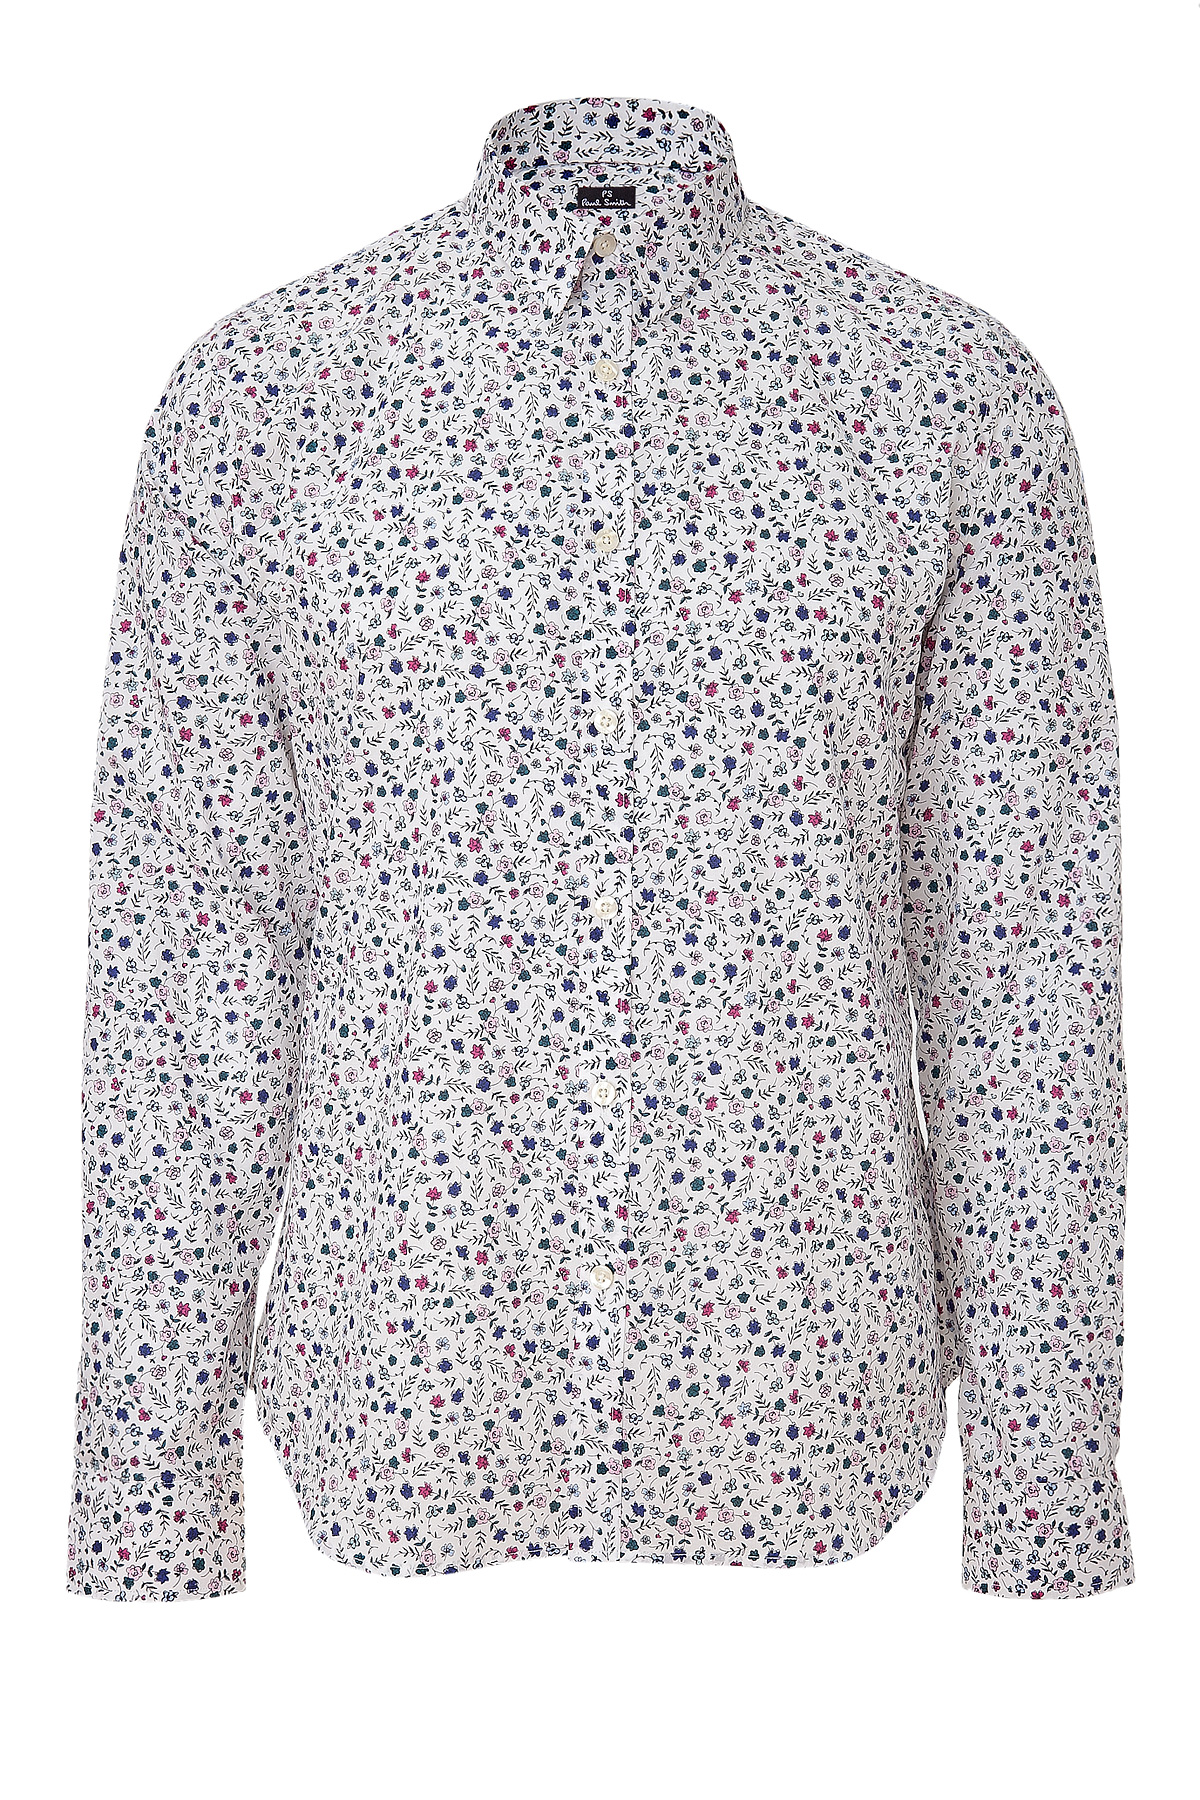 Ps by paul smith Floral Shirt in White for Men | Lyst